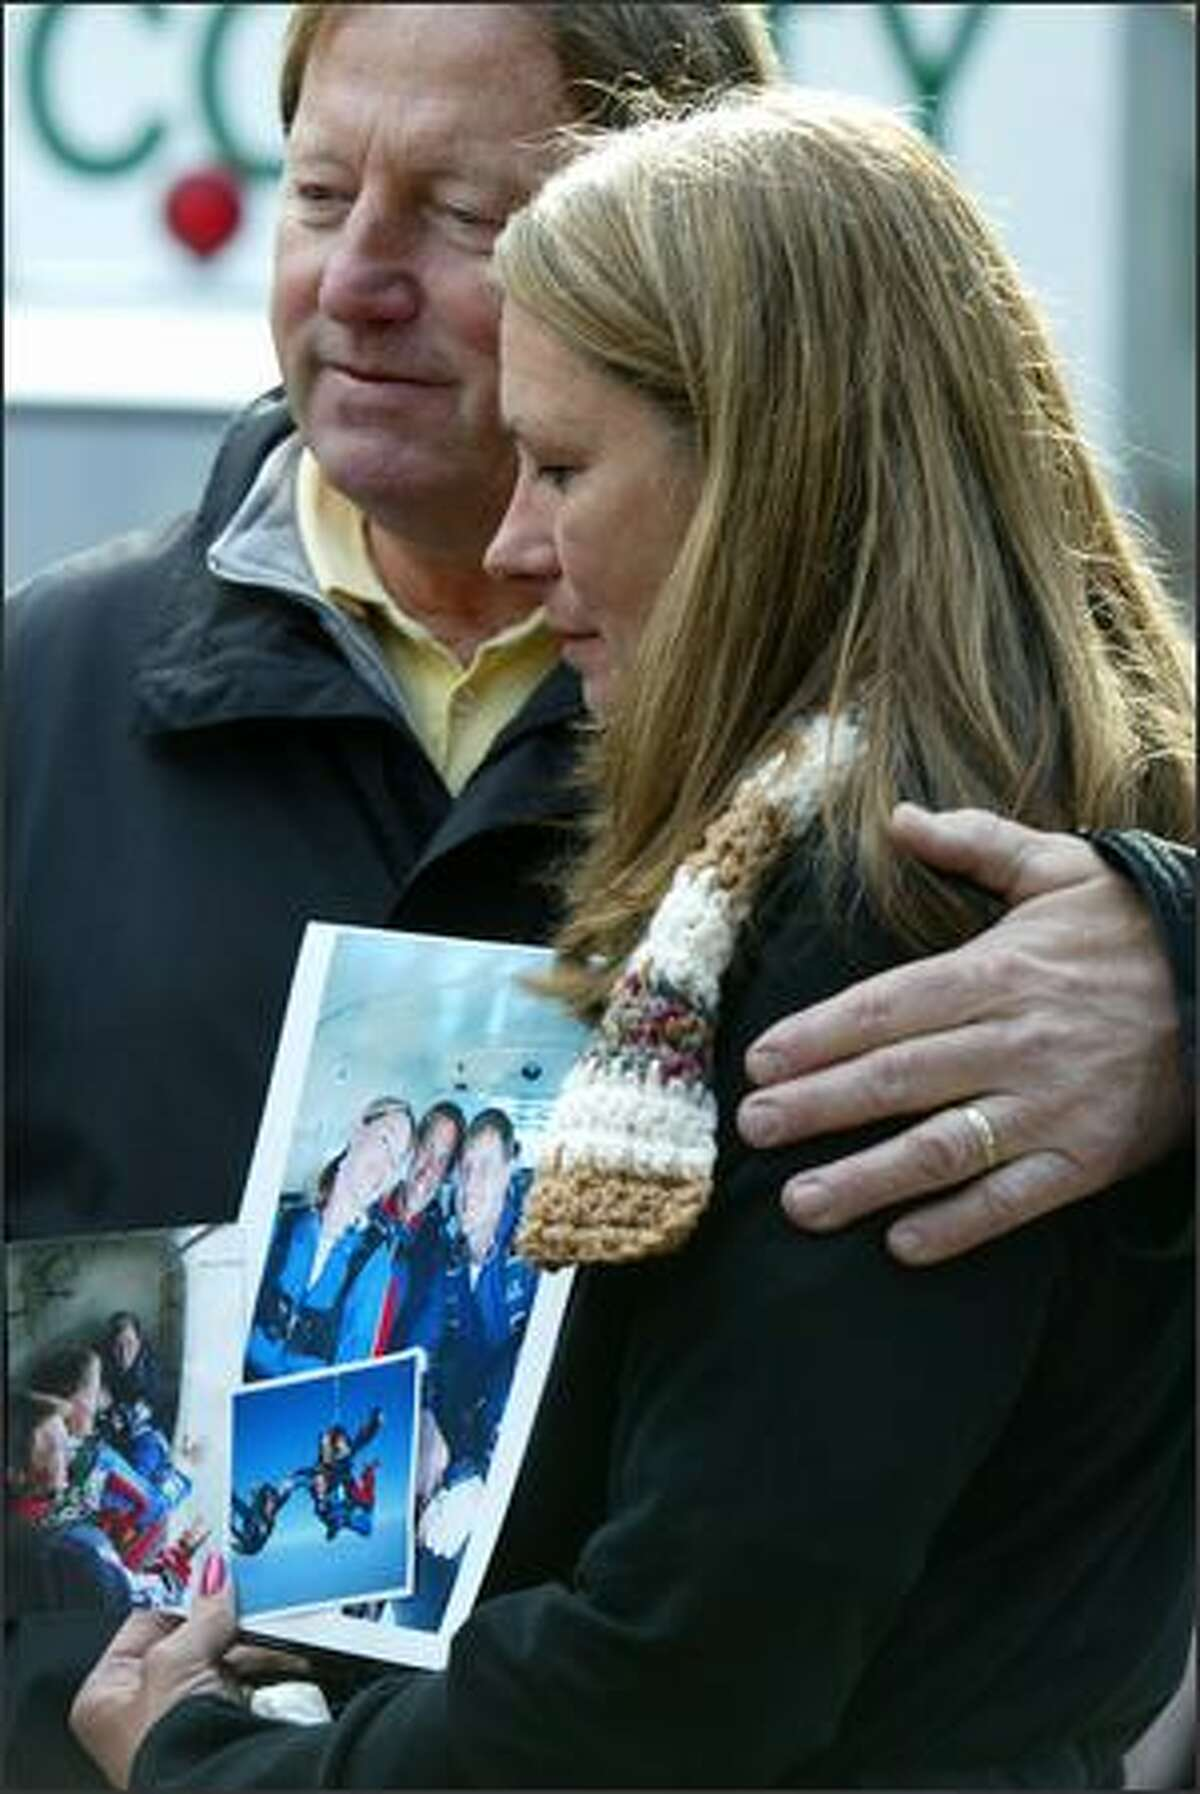 Wanda Craig, mother of Casey Craig, who died in the crash near White Pass, holds a family photo of Casey, his brother Kelly and sister Ivy Green as her husband and Casey's father, Dennis Craig, offers support.